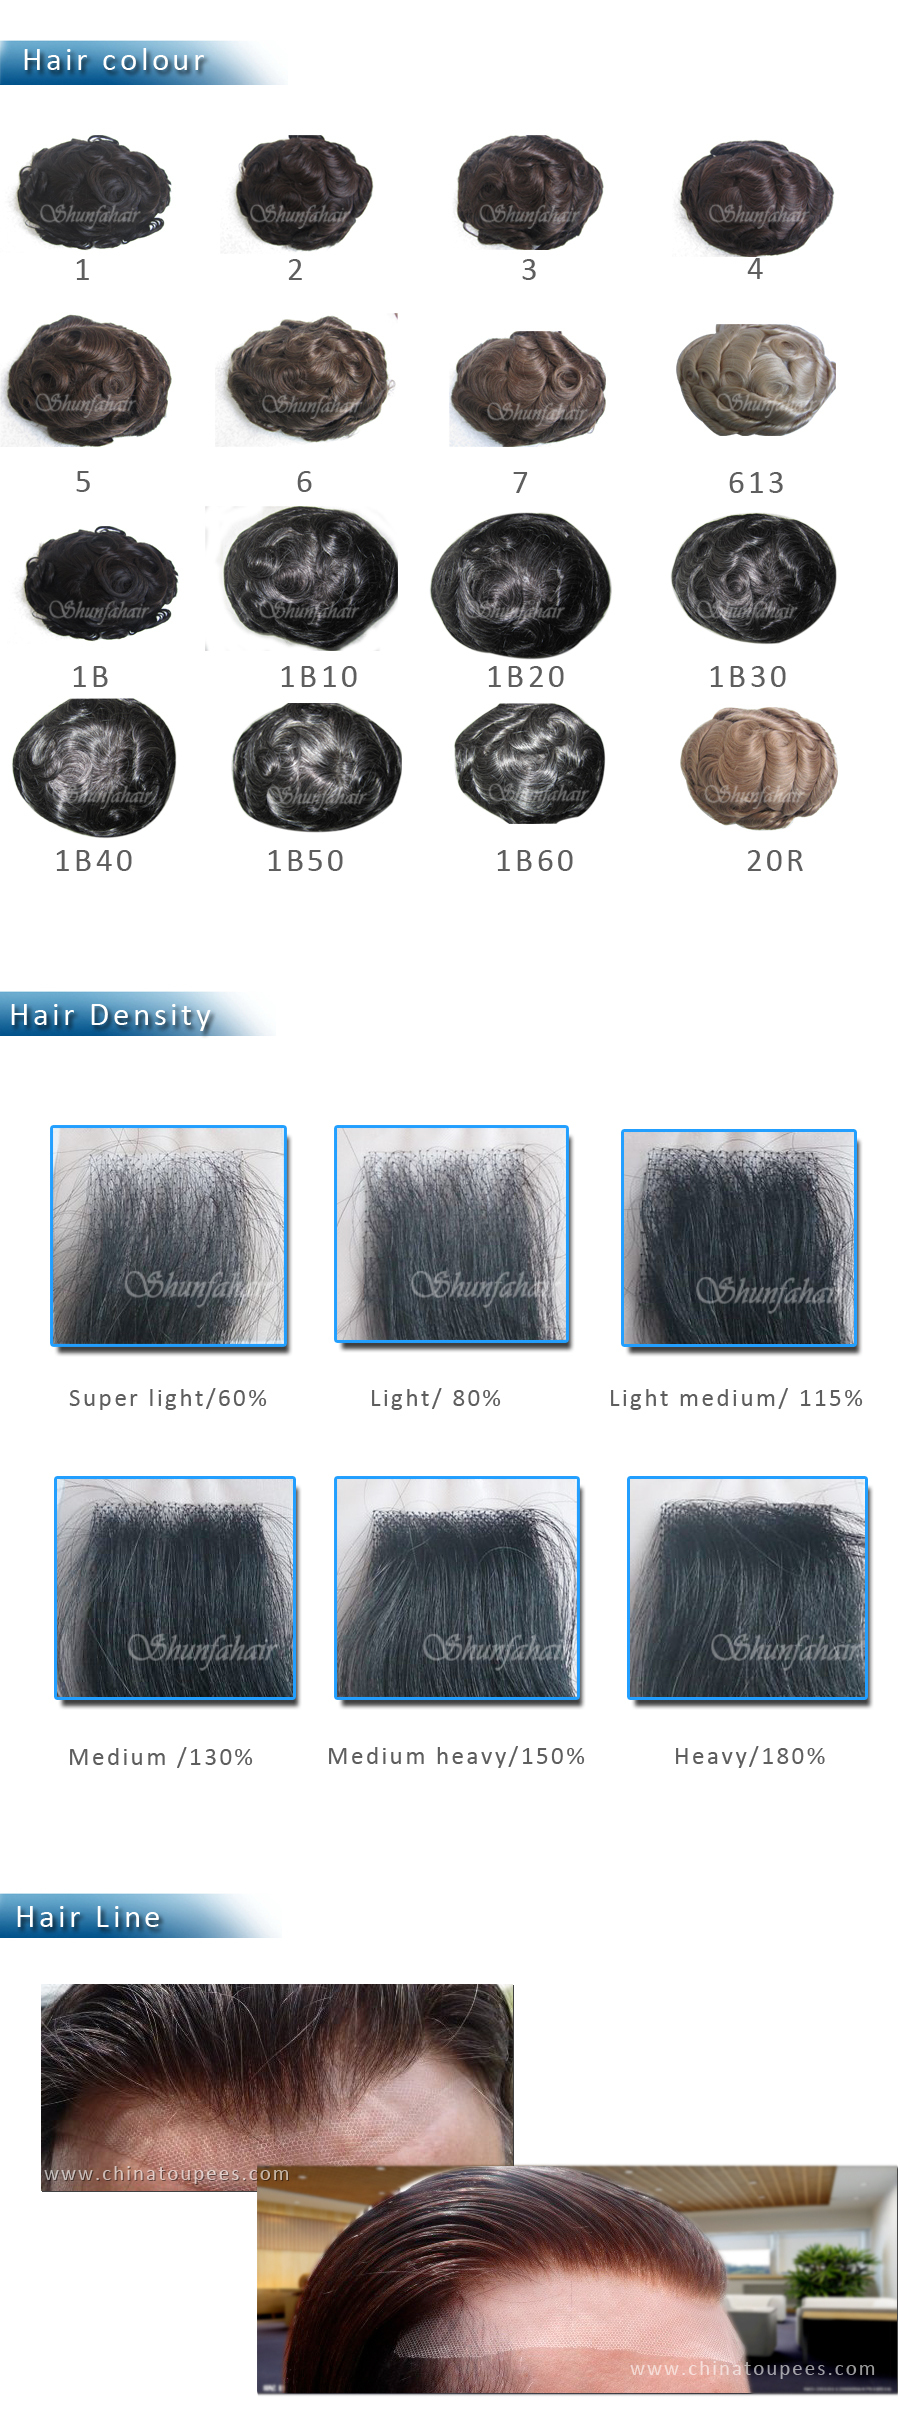 Best sale 100% virgin human hair toupees , French lace /swiss lace with PU around toupees ,natural hair toupees   , invisible knot very natural hair line toupee.jpg